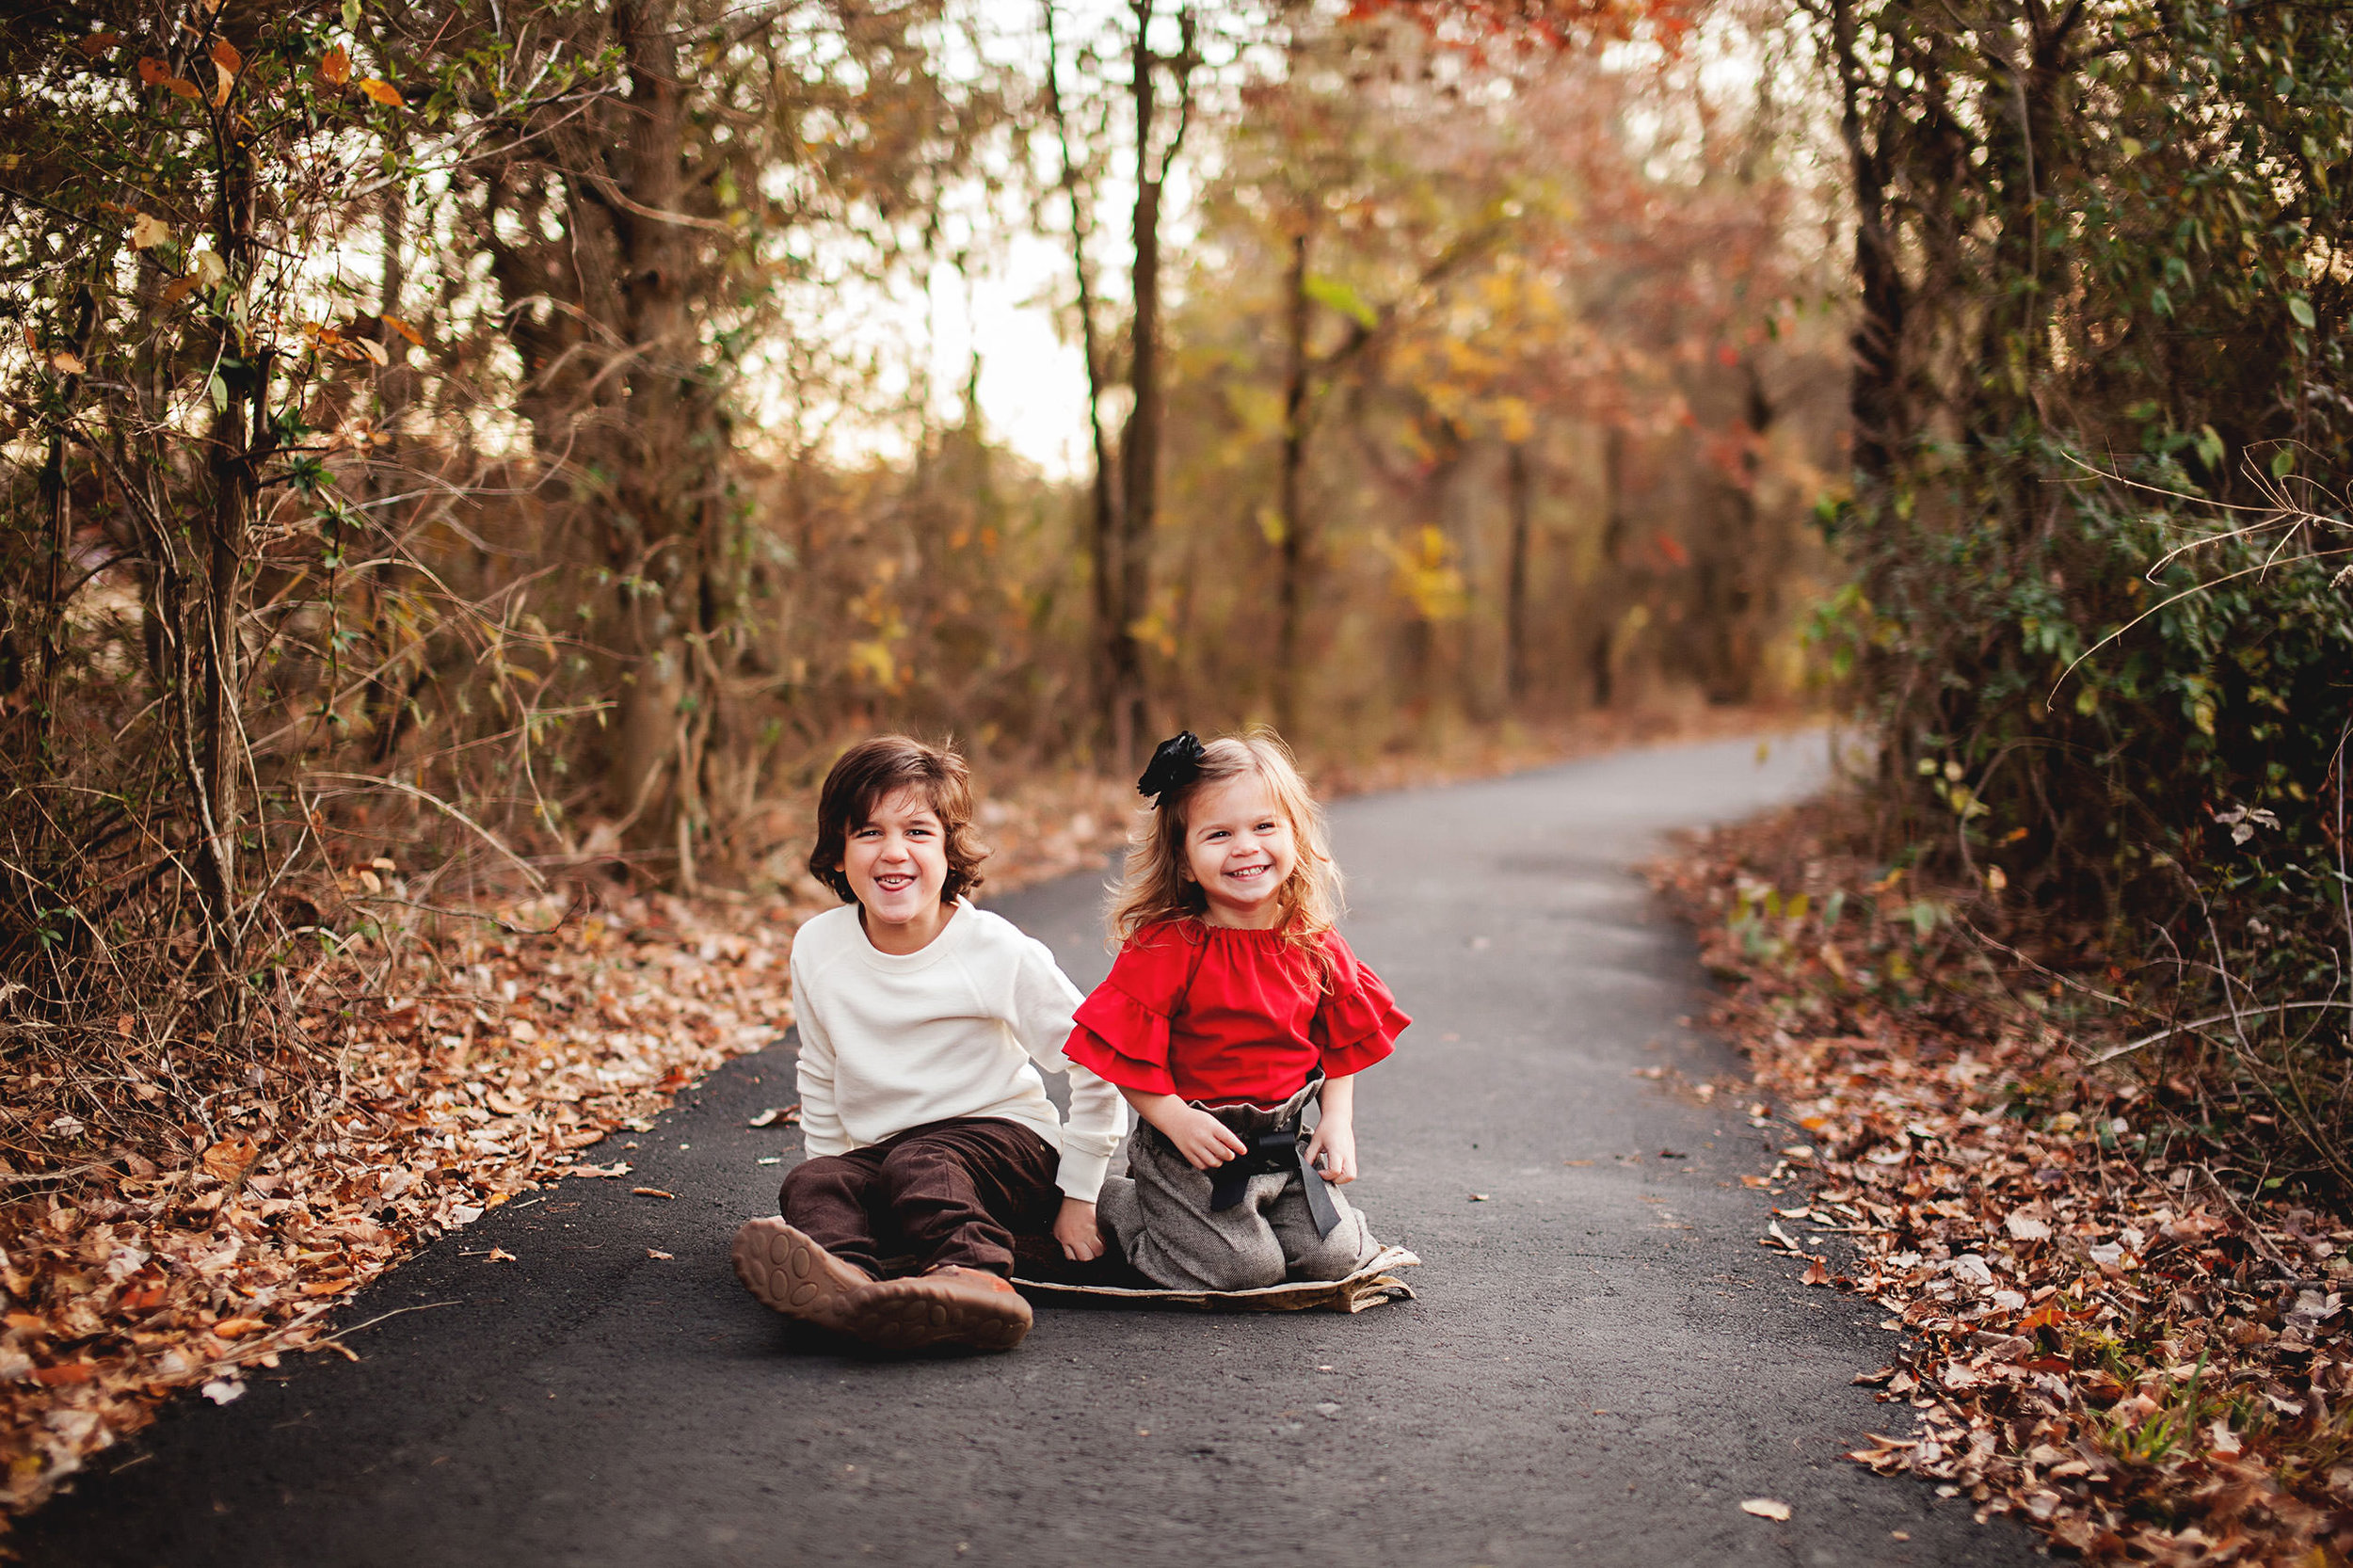 arkansas_children_child_portrait-013.jpg